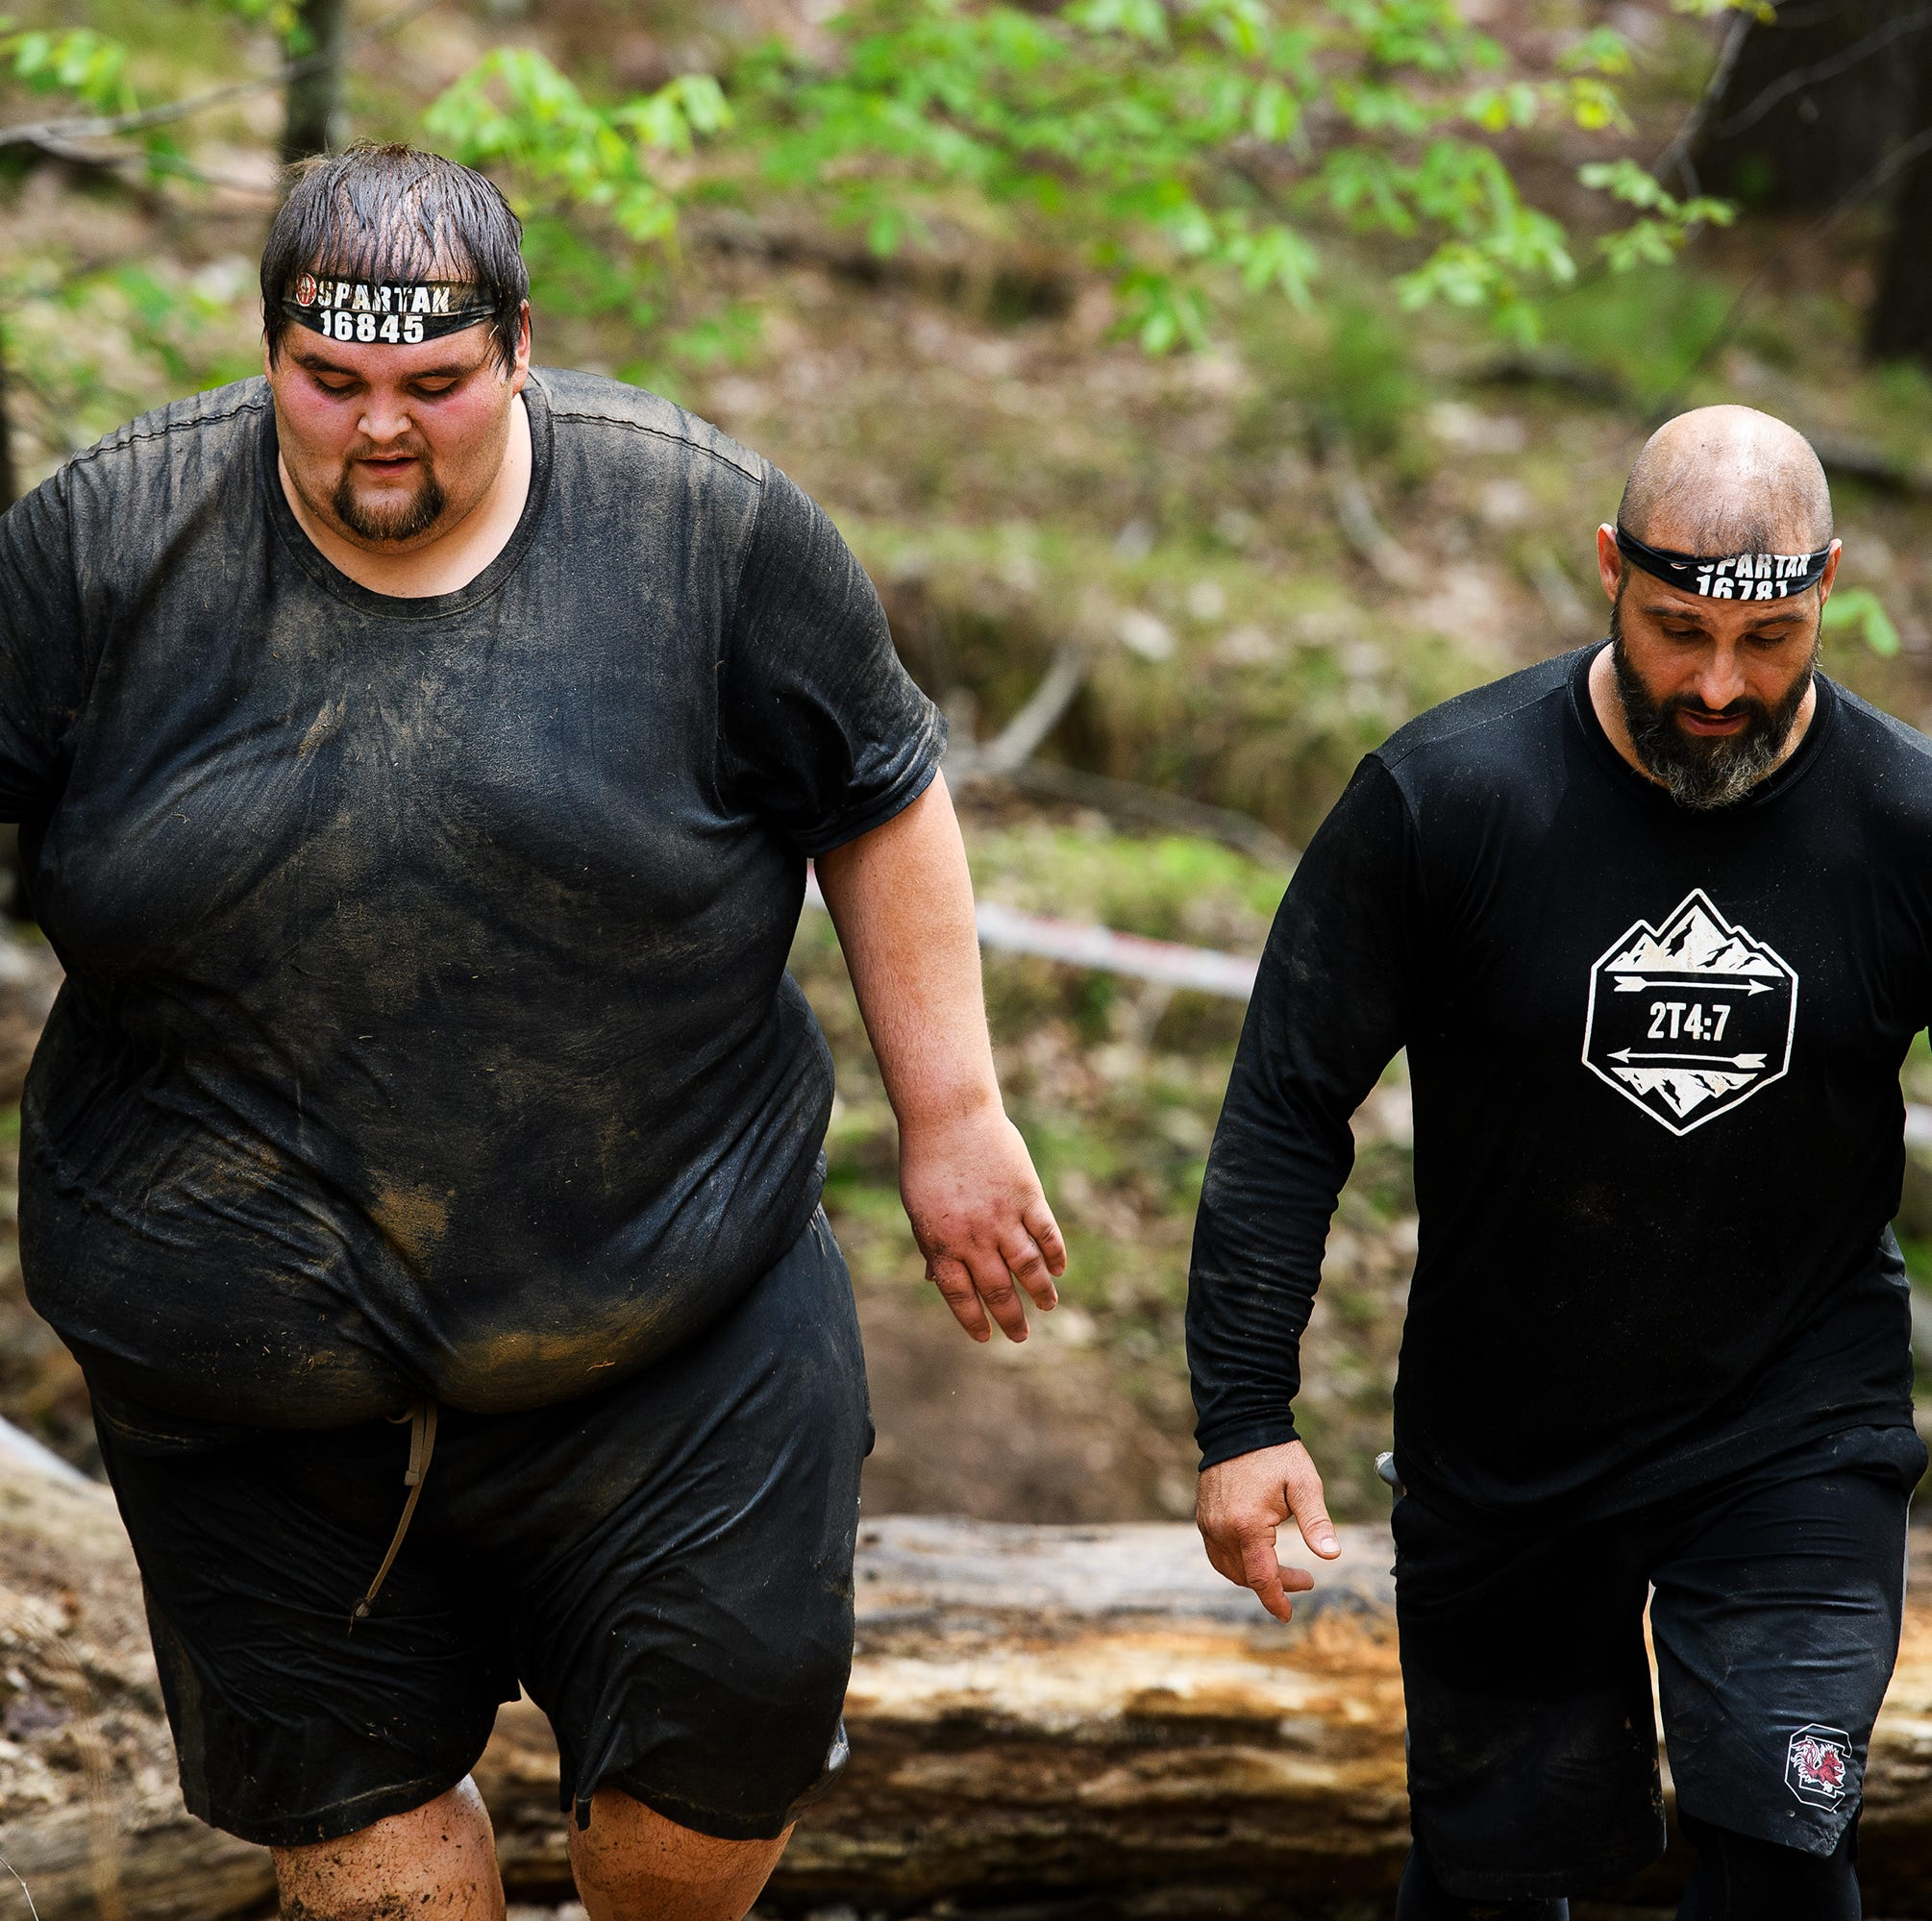 From football player to 500 lbs: How a SC man is changing his life one Spartan Race at a time